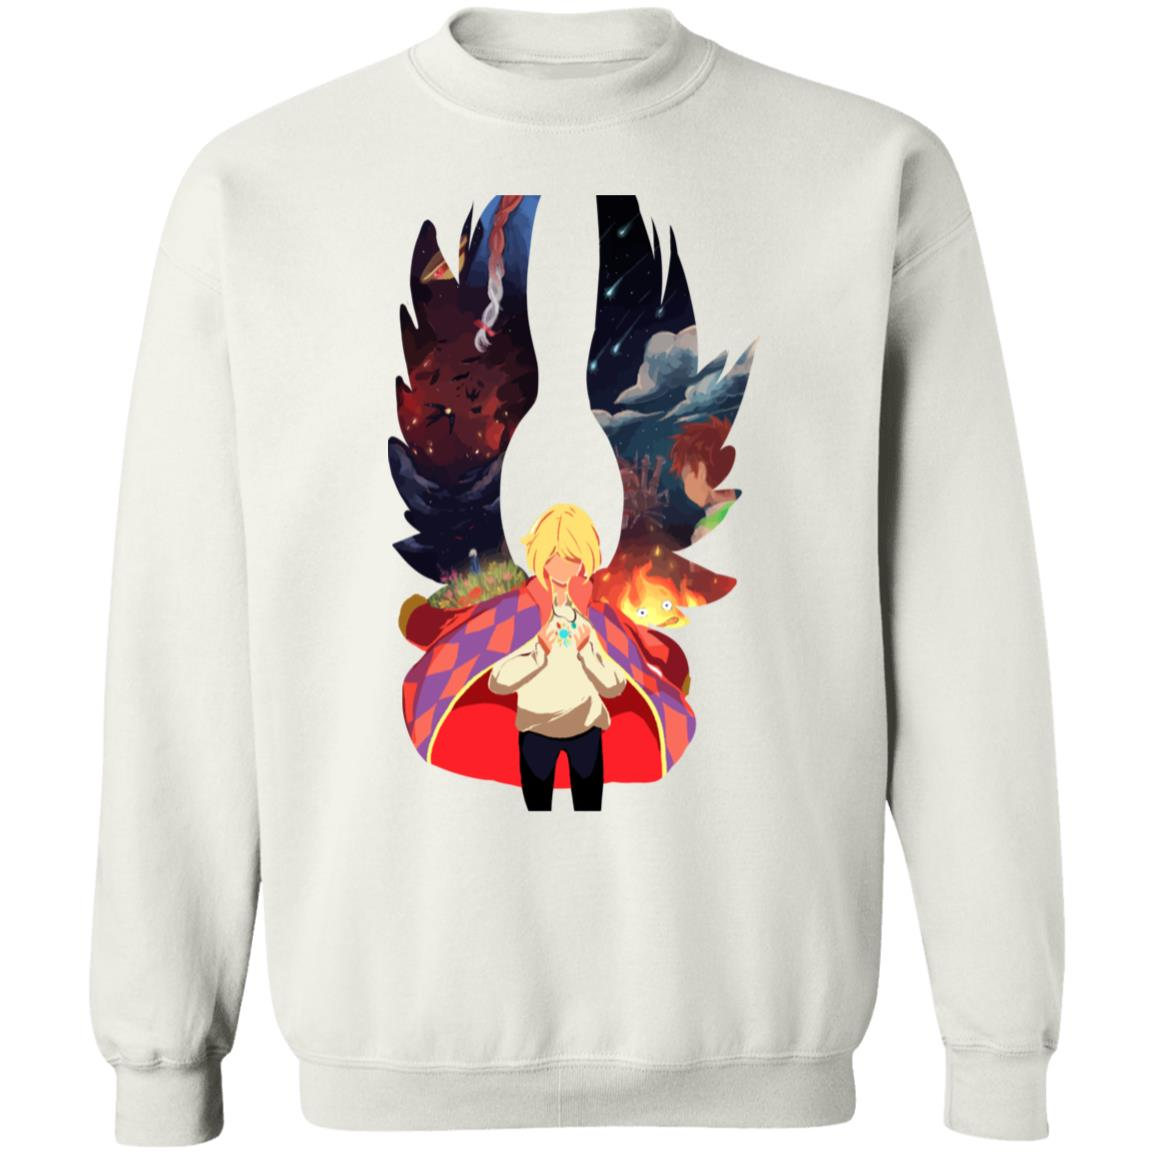 Howl and Colorful Wings Sweatshirt